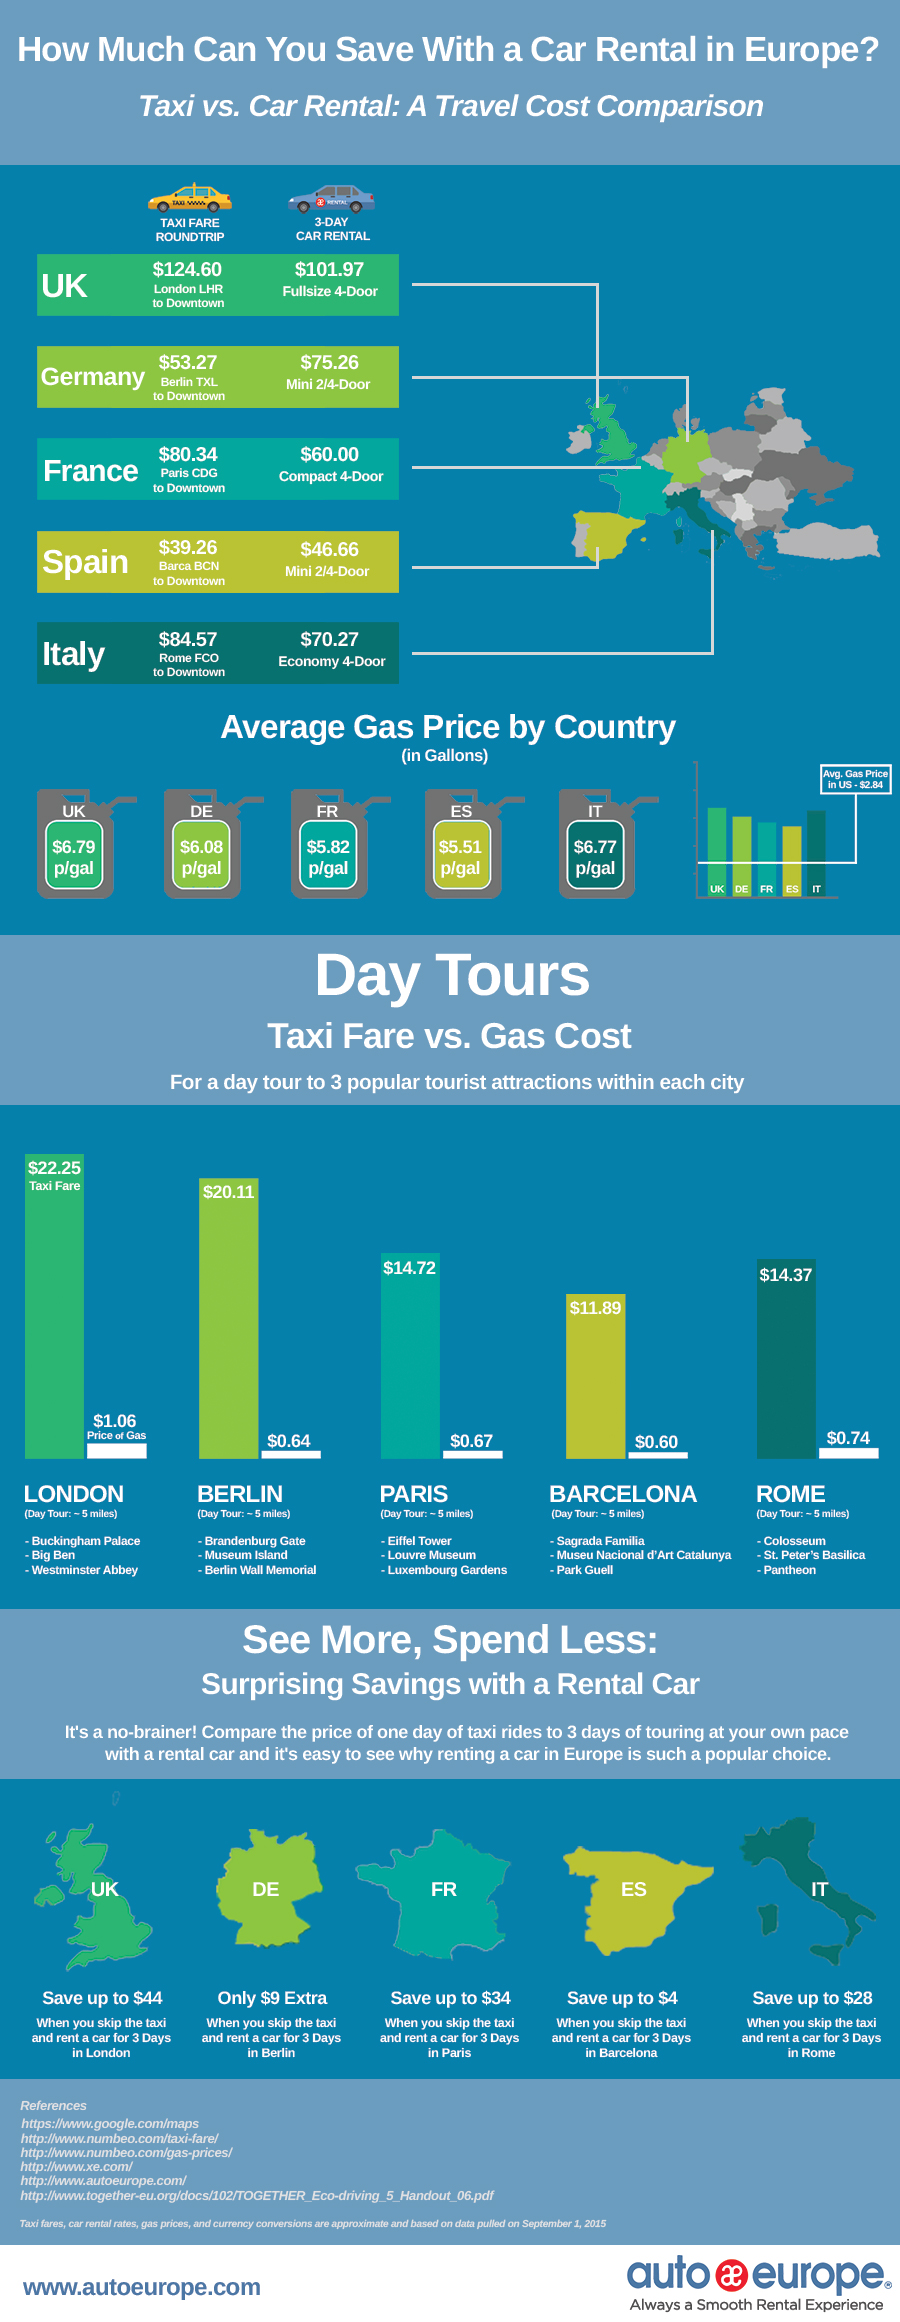 Taxi vs. Car Rental: A Travel Cost Comparison for Europe